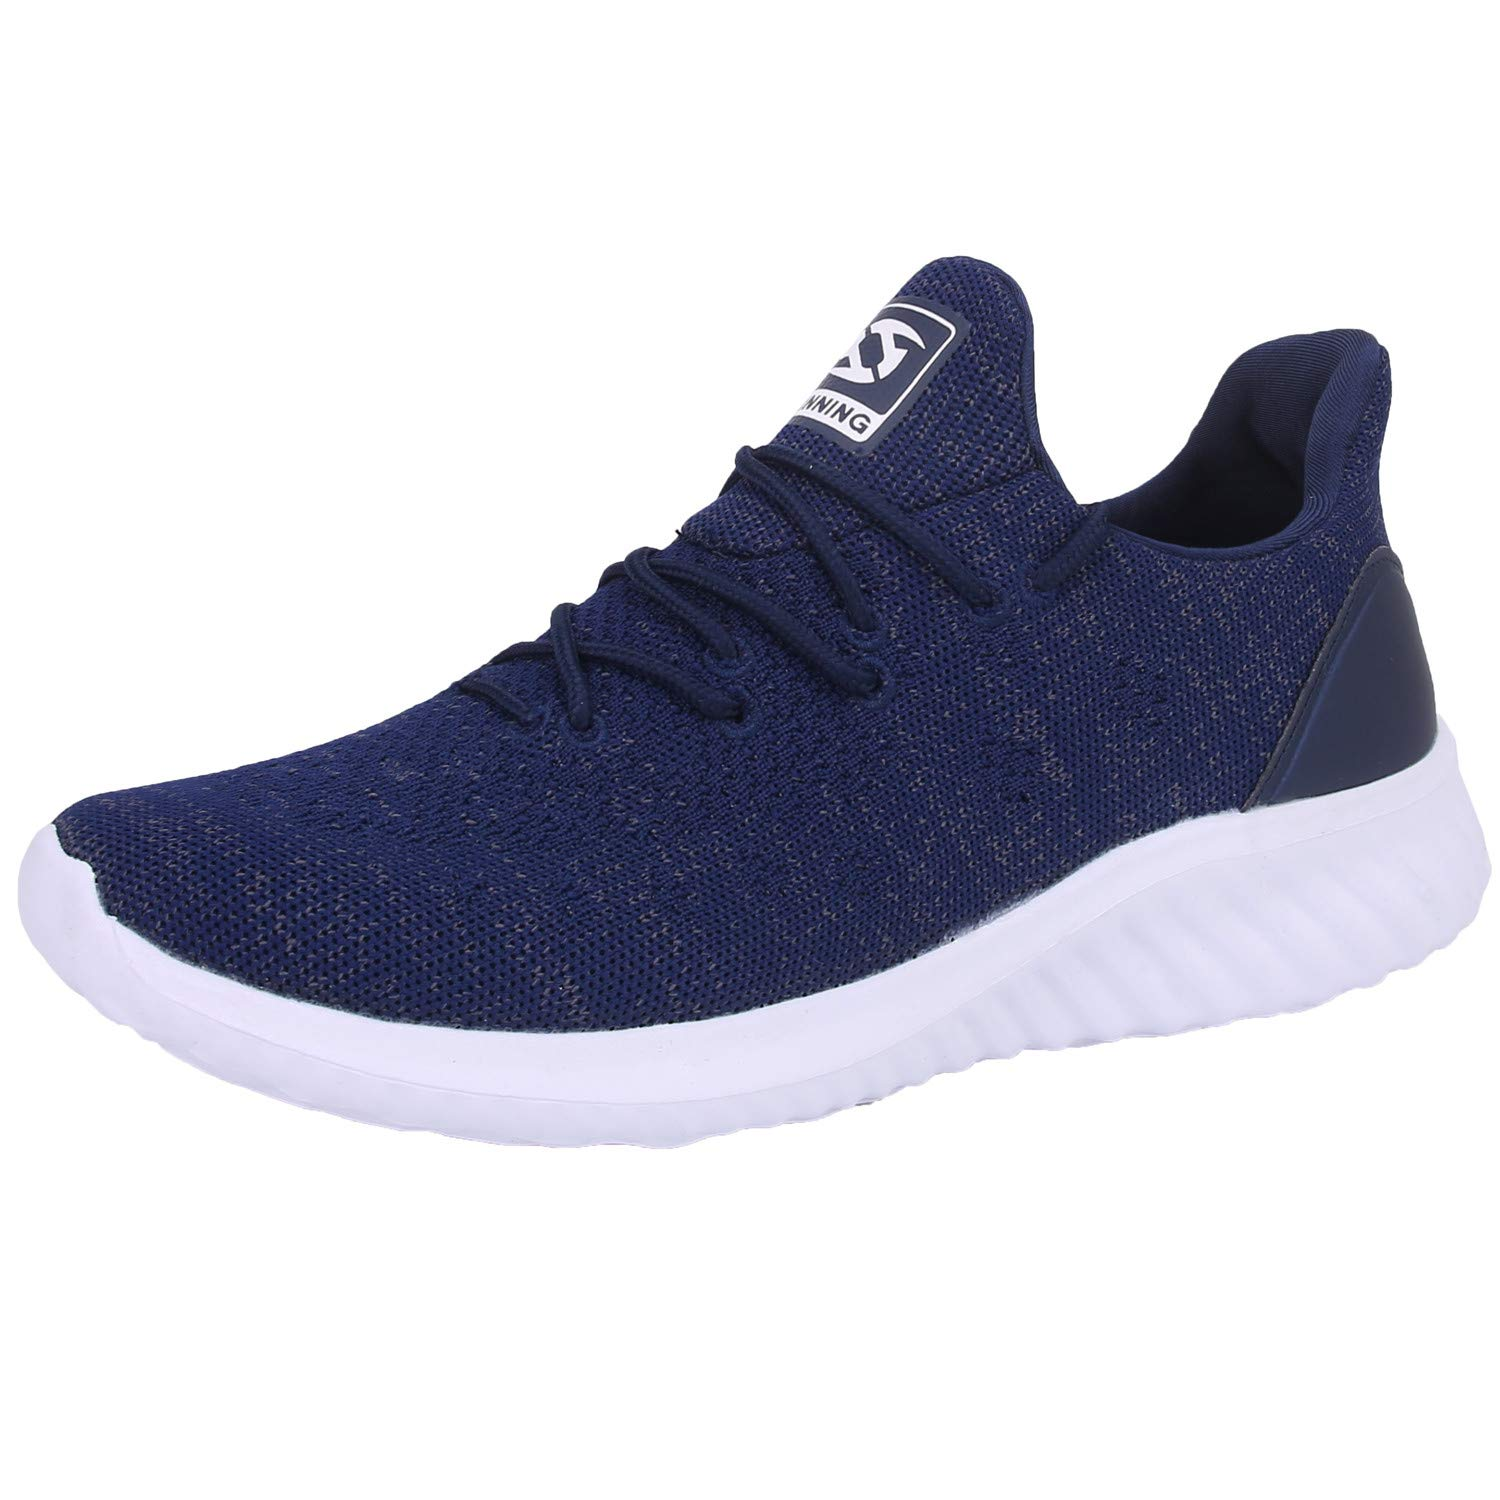 JIASUQI Men's Classic Breathable Casual Sports Sneakers Athletic Running Shoes